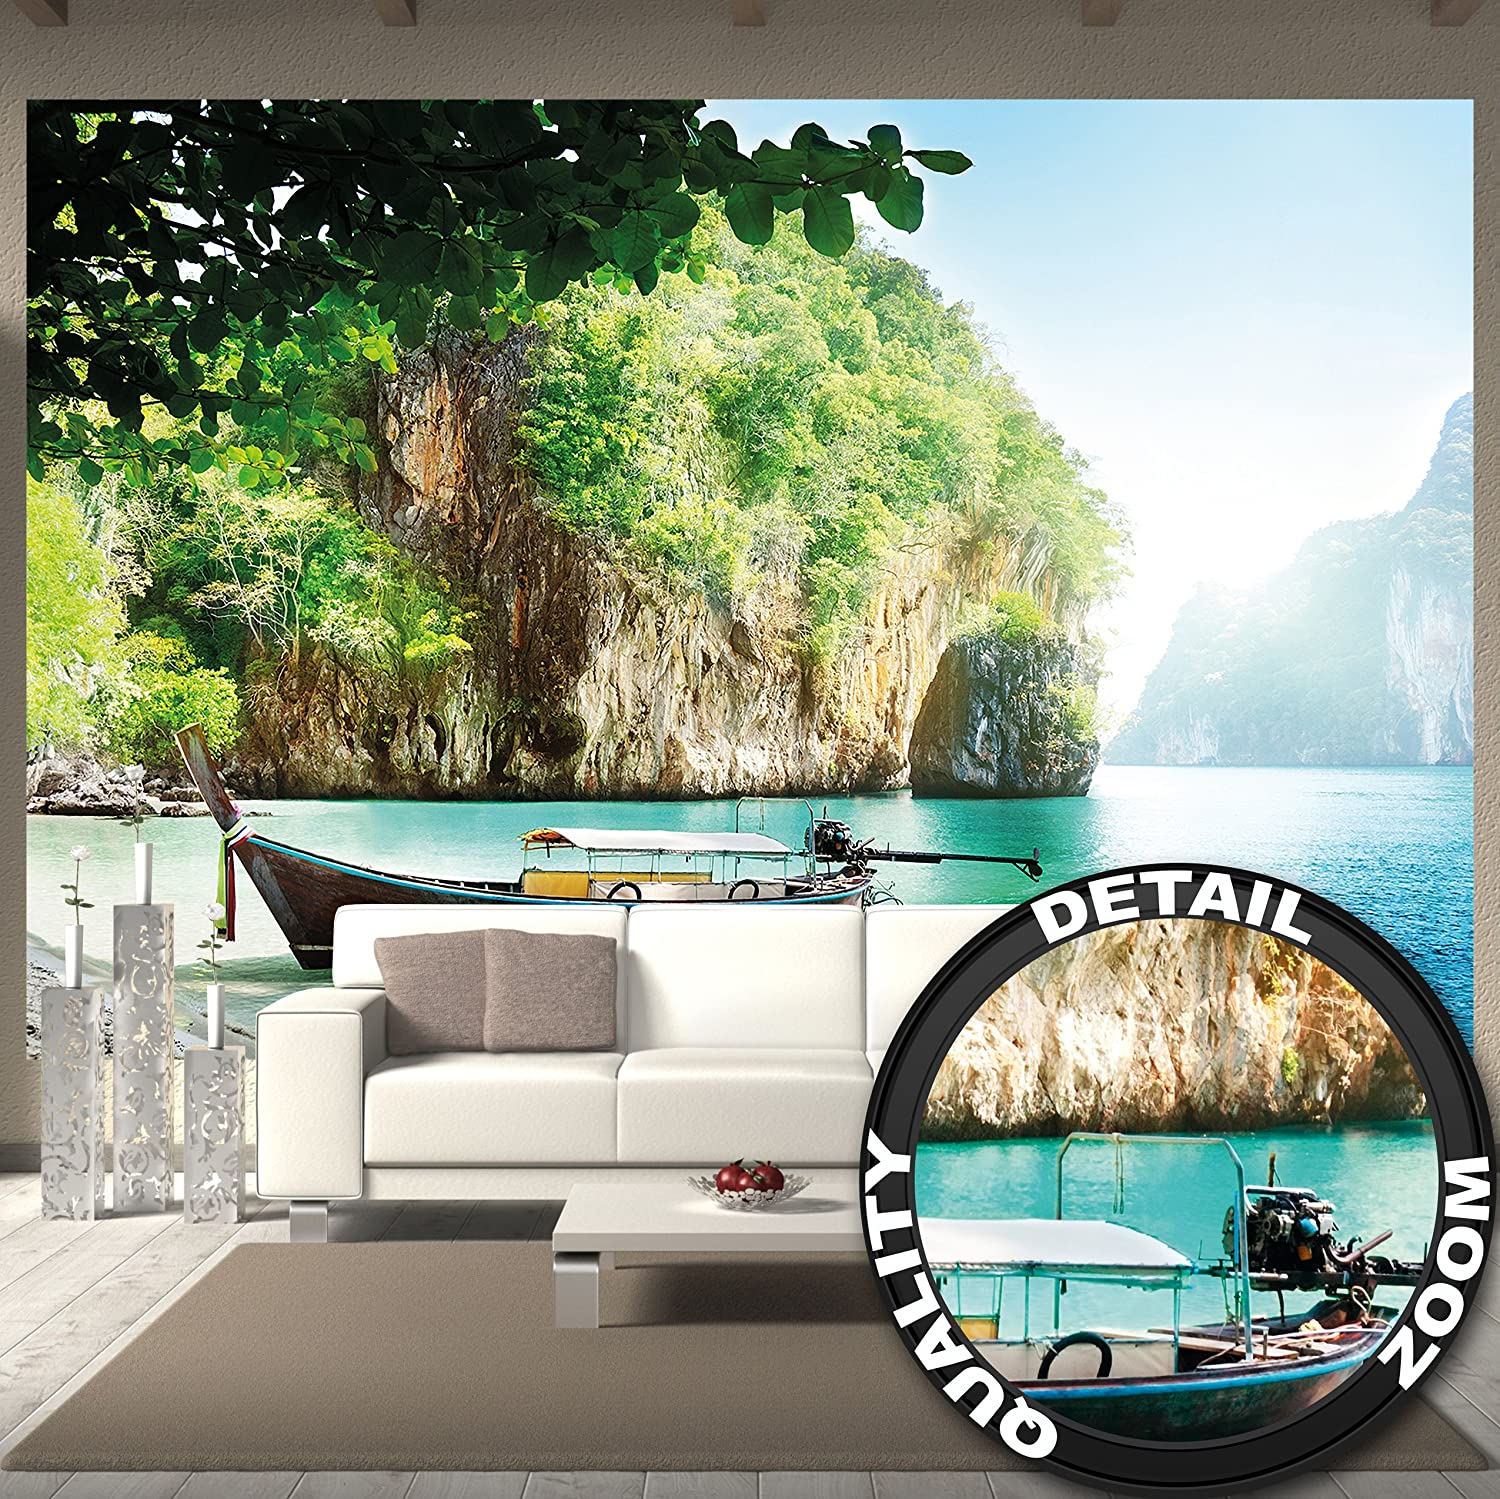 GREAT ART Wallpaper Boat in a Bay -Beach Wall Decoration- Island Paradise Mural Sand, Sun and Relax (132.3 x 93.7 Inch / 336 x 238 cm)